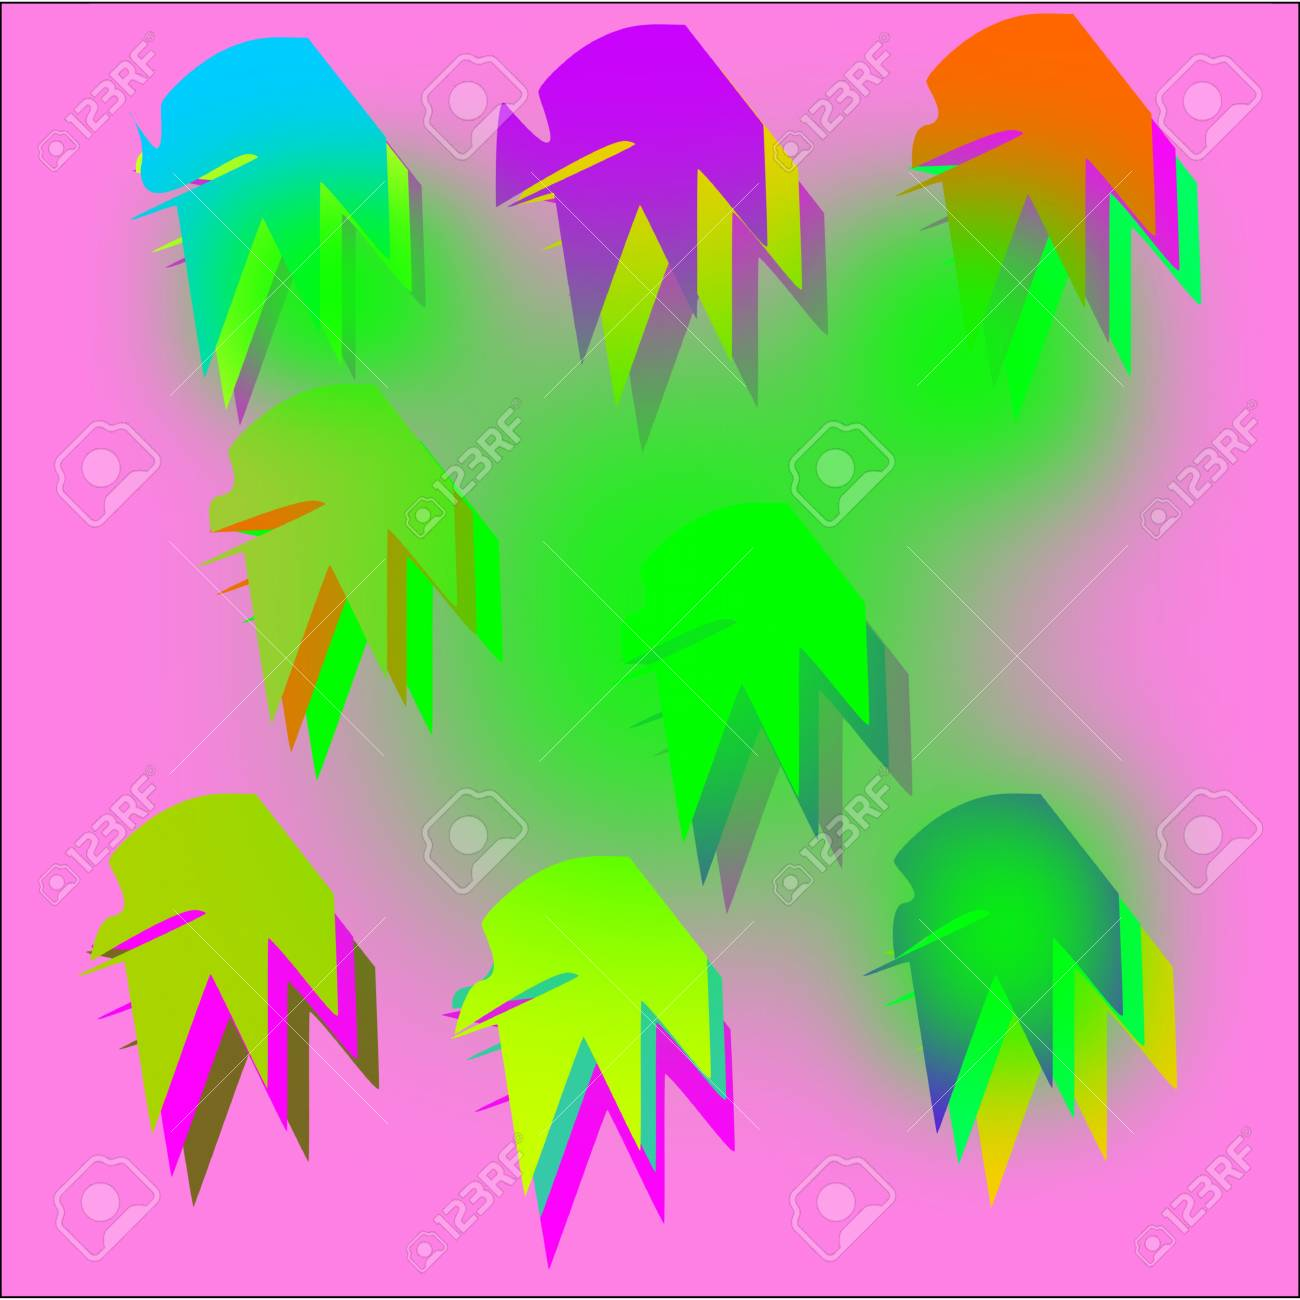 Abstract colored background for websites design for greeting abstract colored background for websites design for greeting cards and banners and posters stock vector m4hsunfo